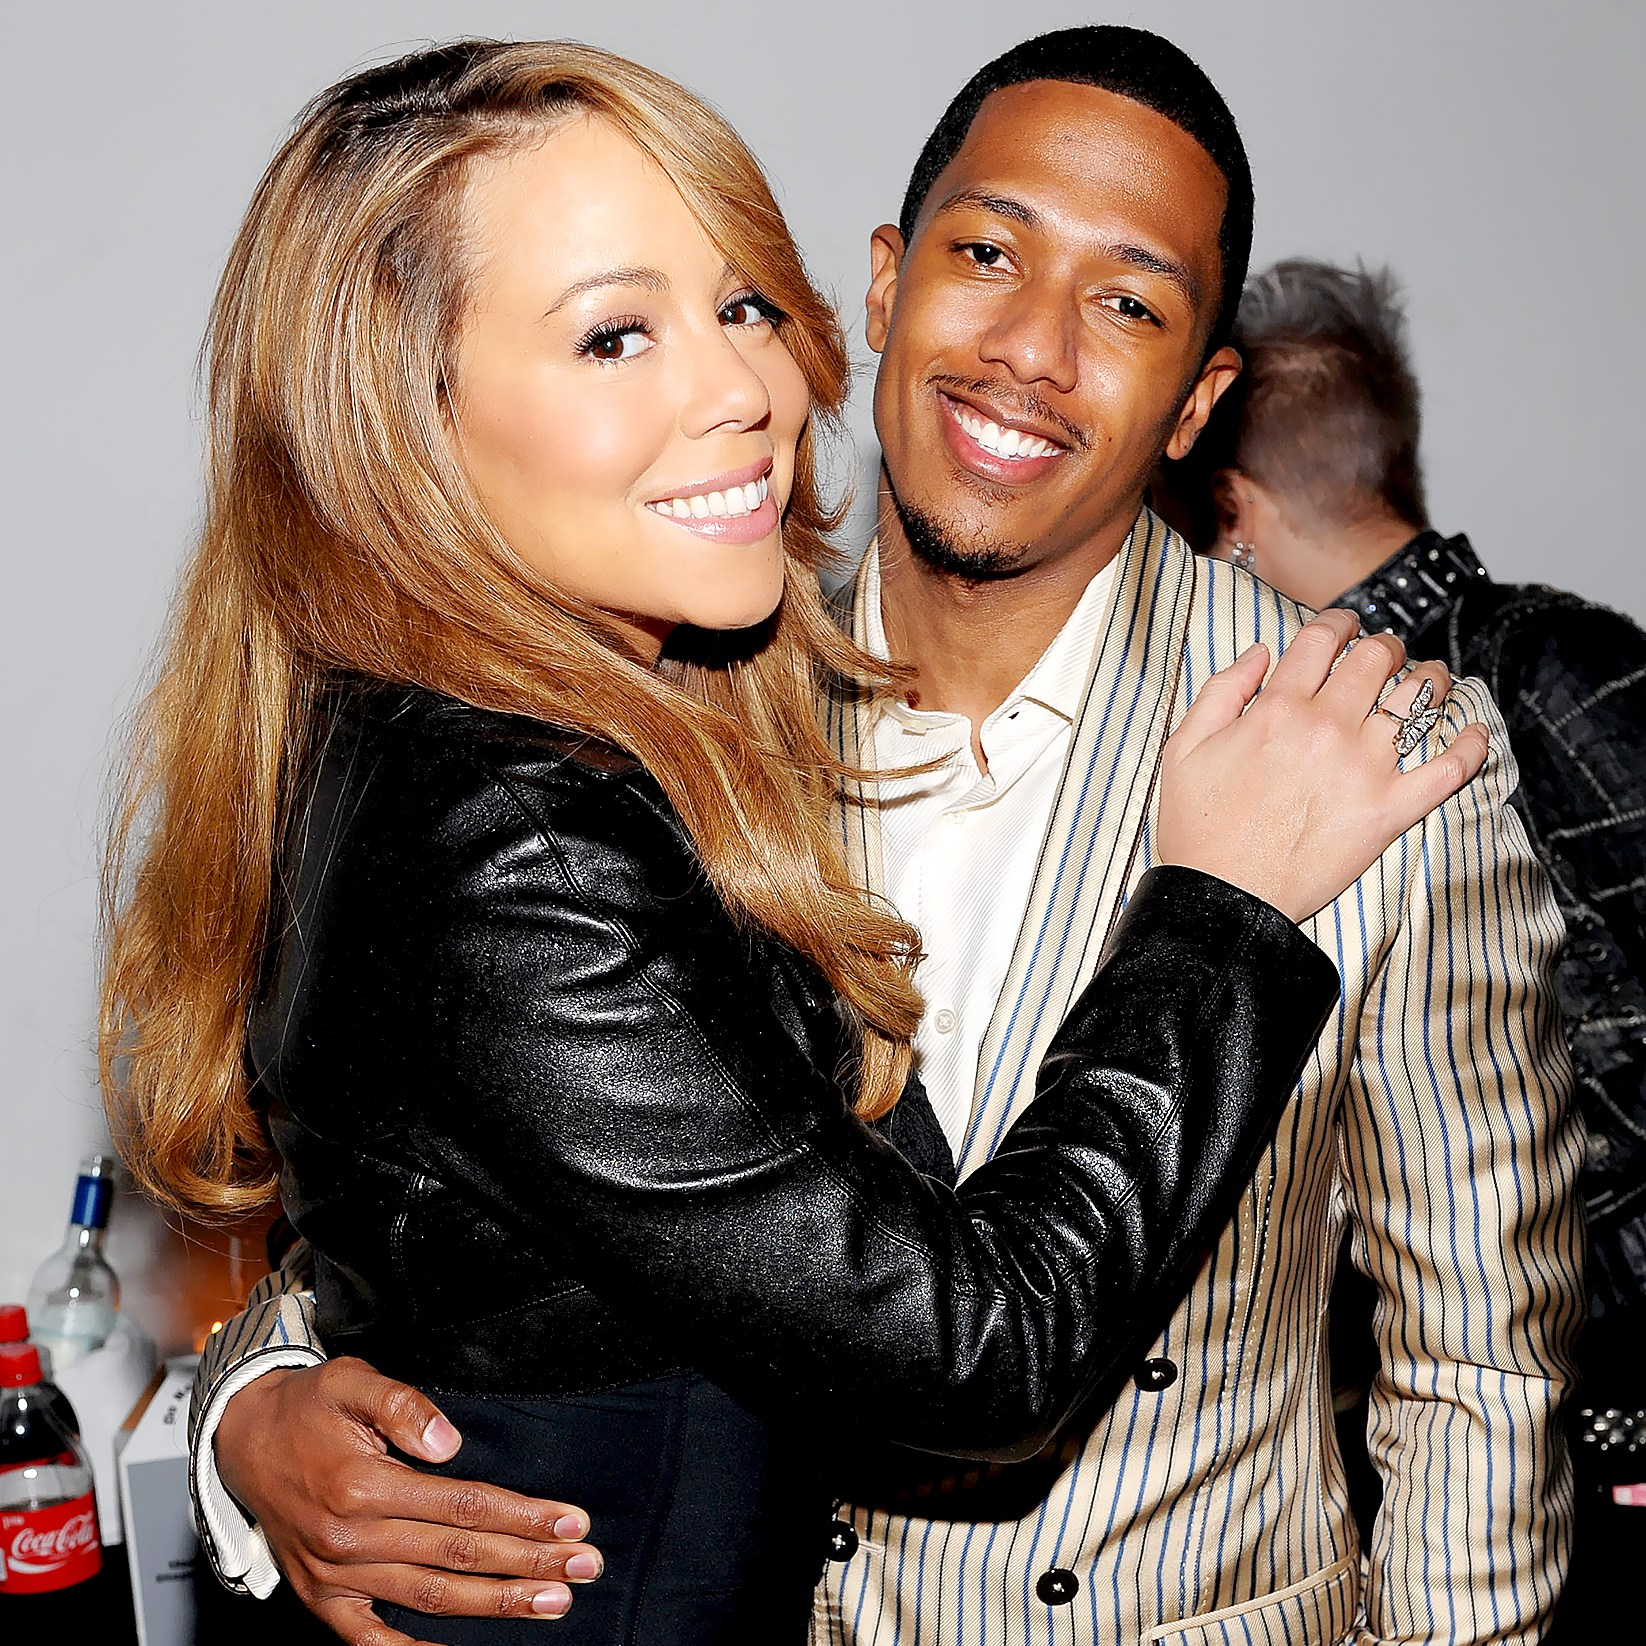 Nick-Cannon-Mariah-Carey-bad-press